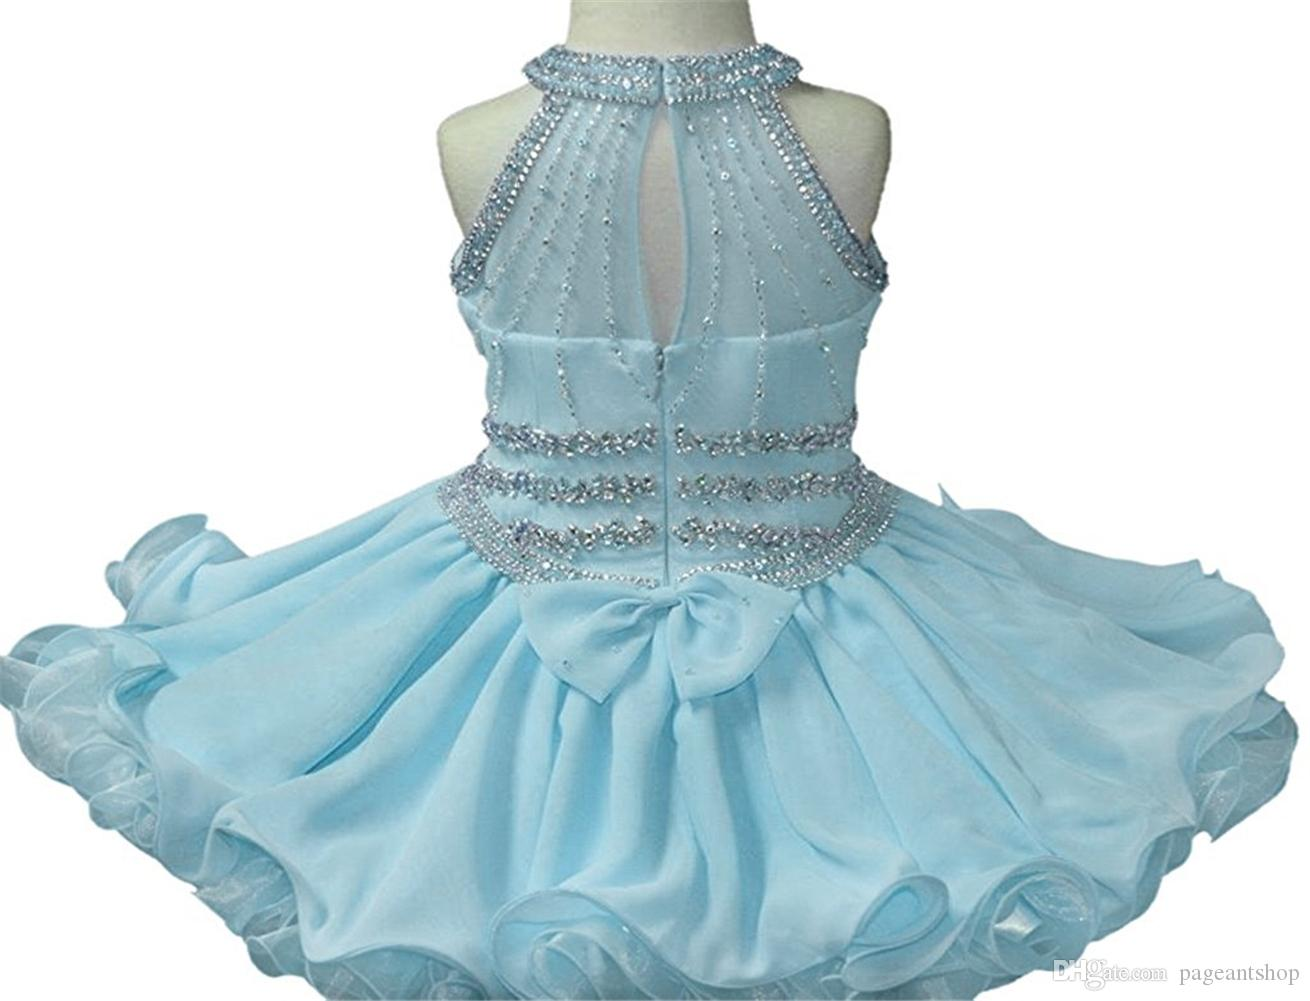 Baby Girls Halter White Pageant Cupcake Dresses Toddler Glitz Mini Short Birthday Party Gowns Infant Formal Wear Dresses